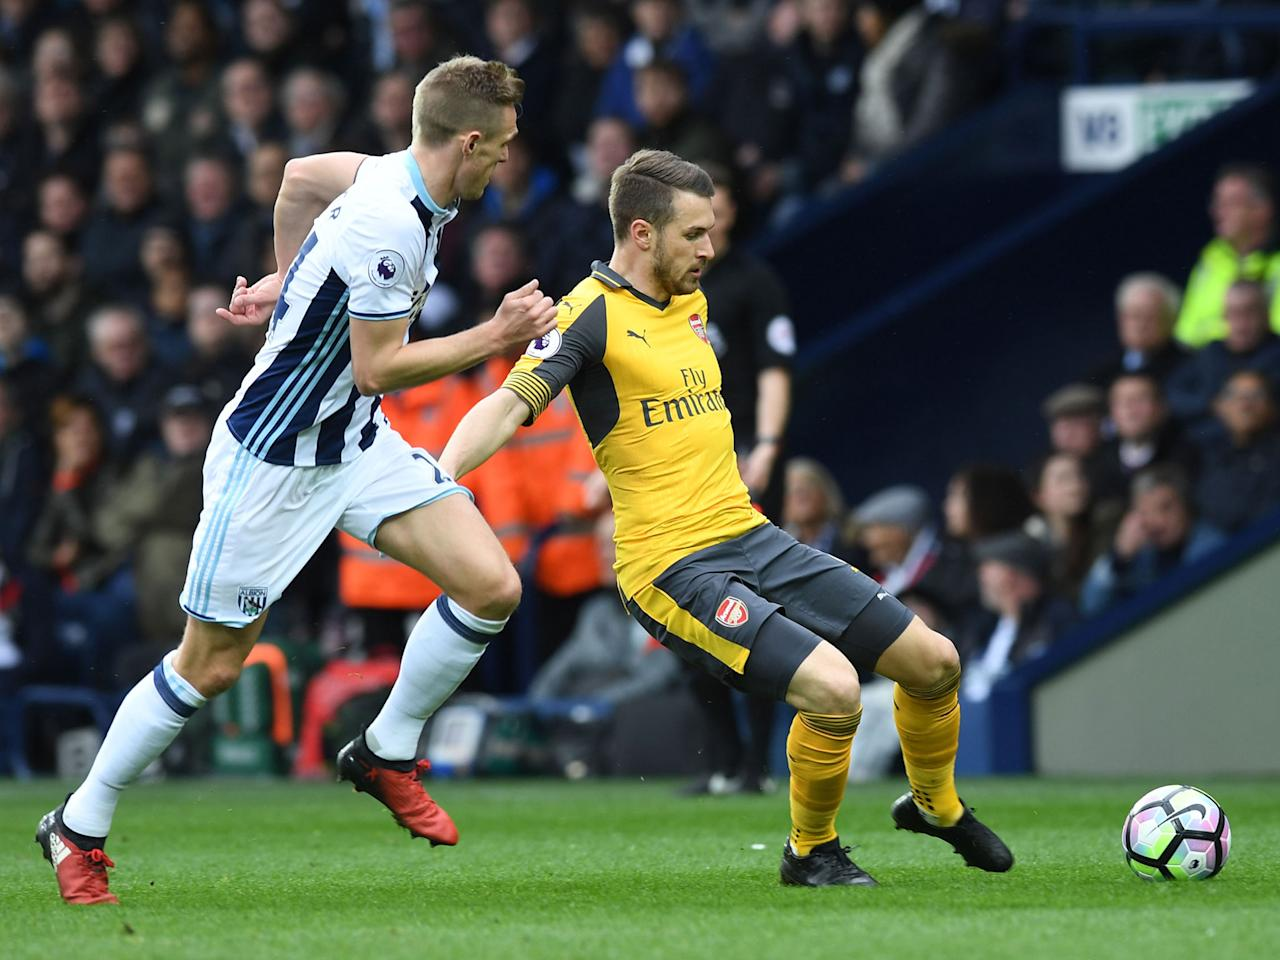 Arsenal vs West Brom: What time does it start, where can I watch it and what are the odds?